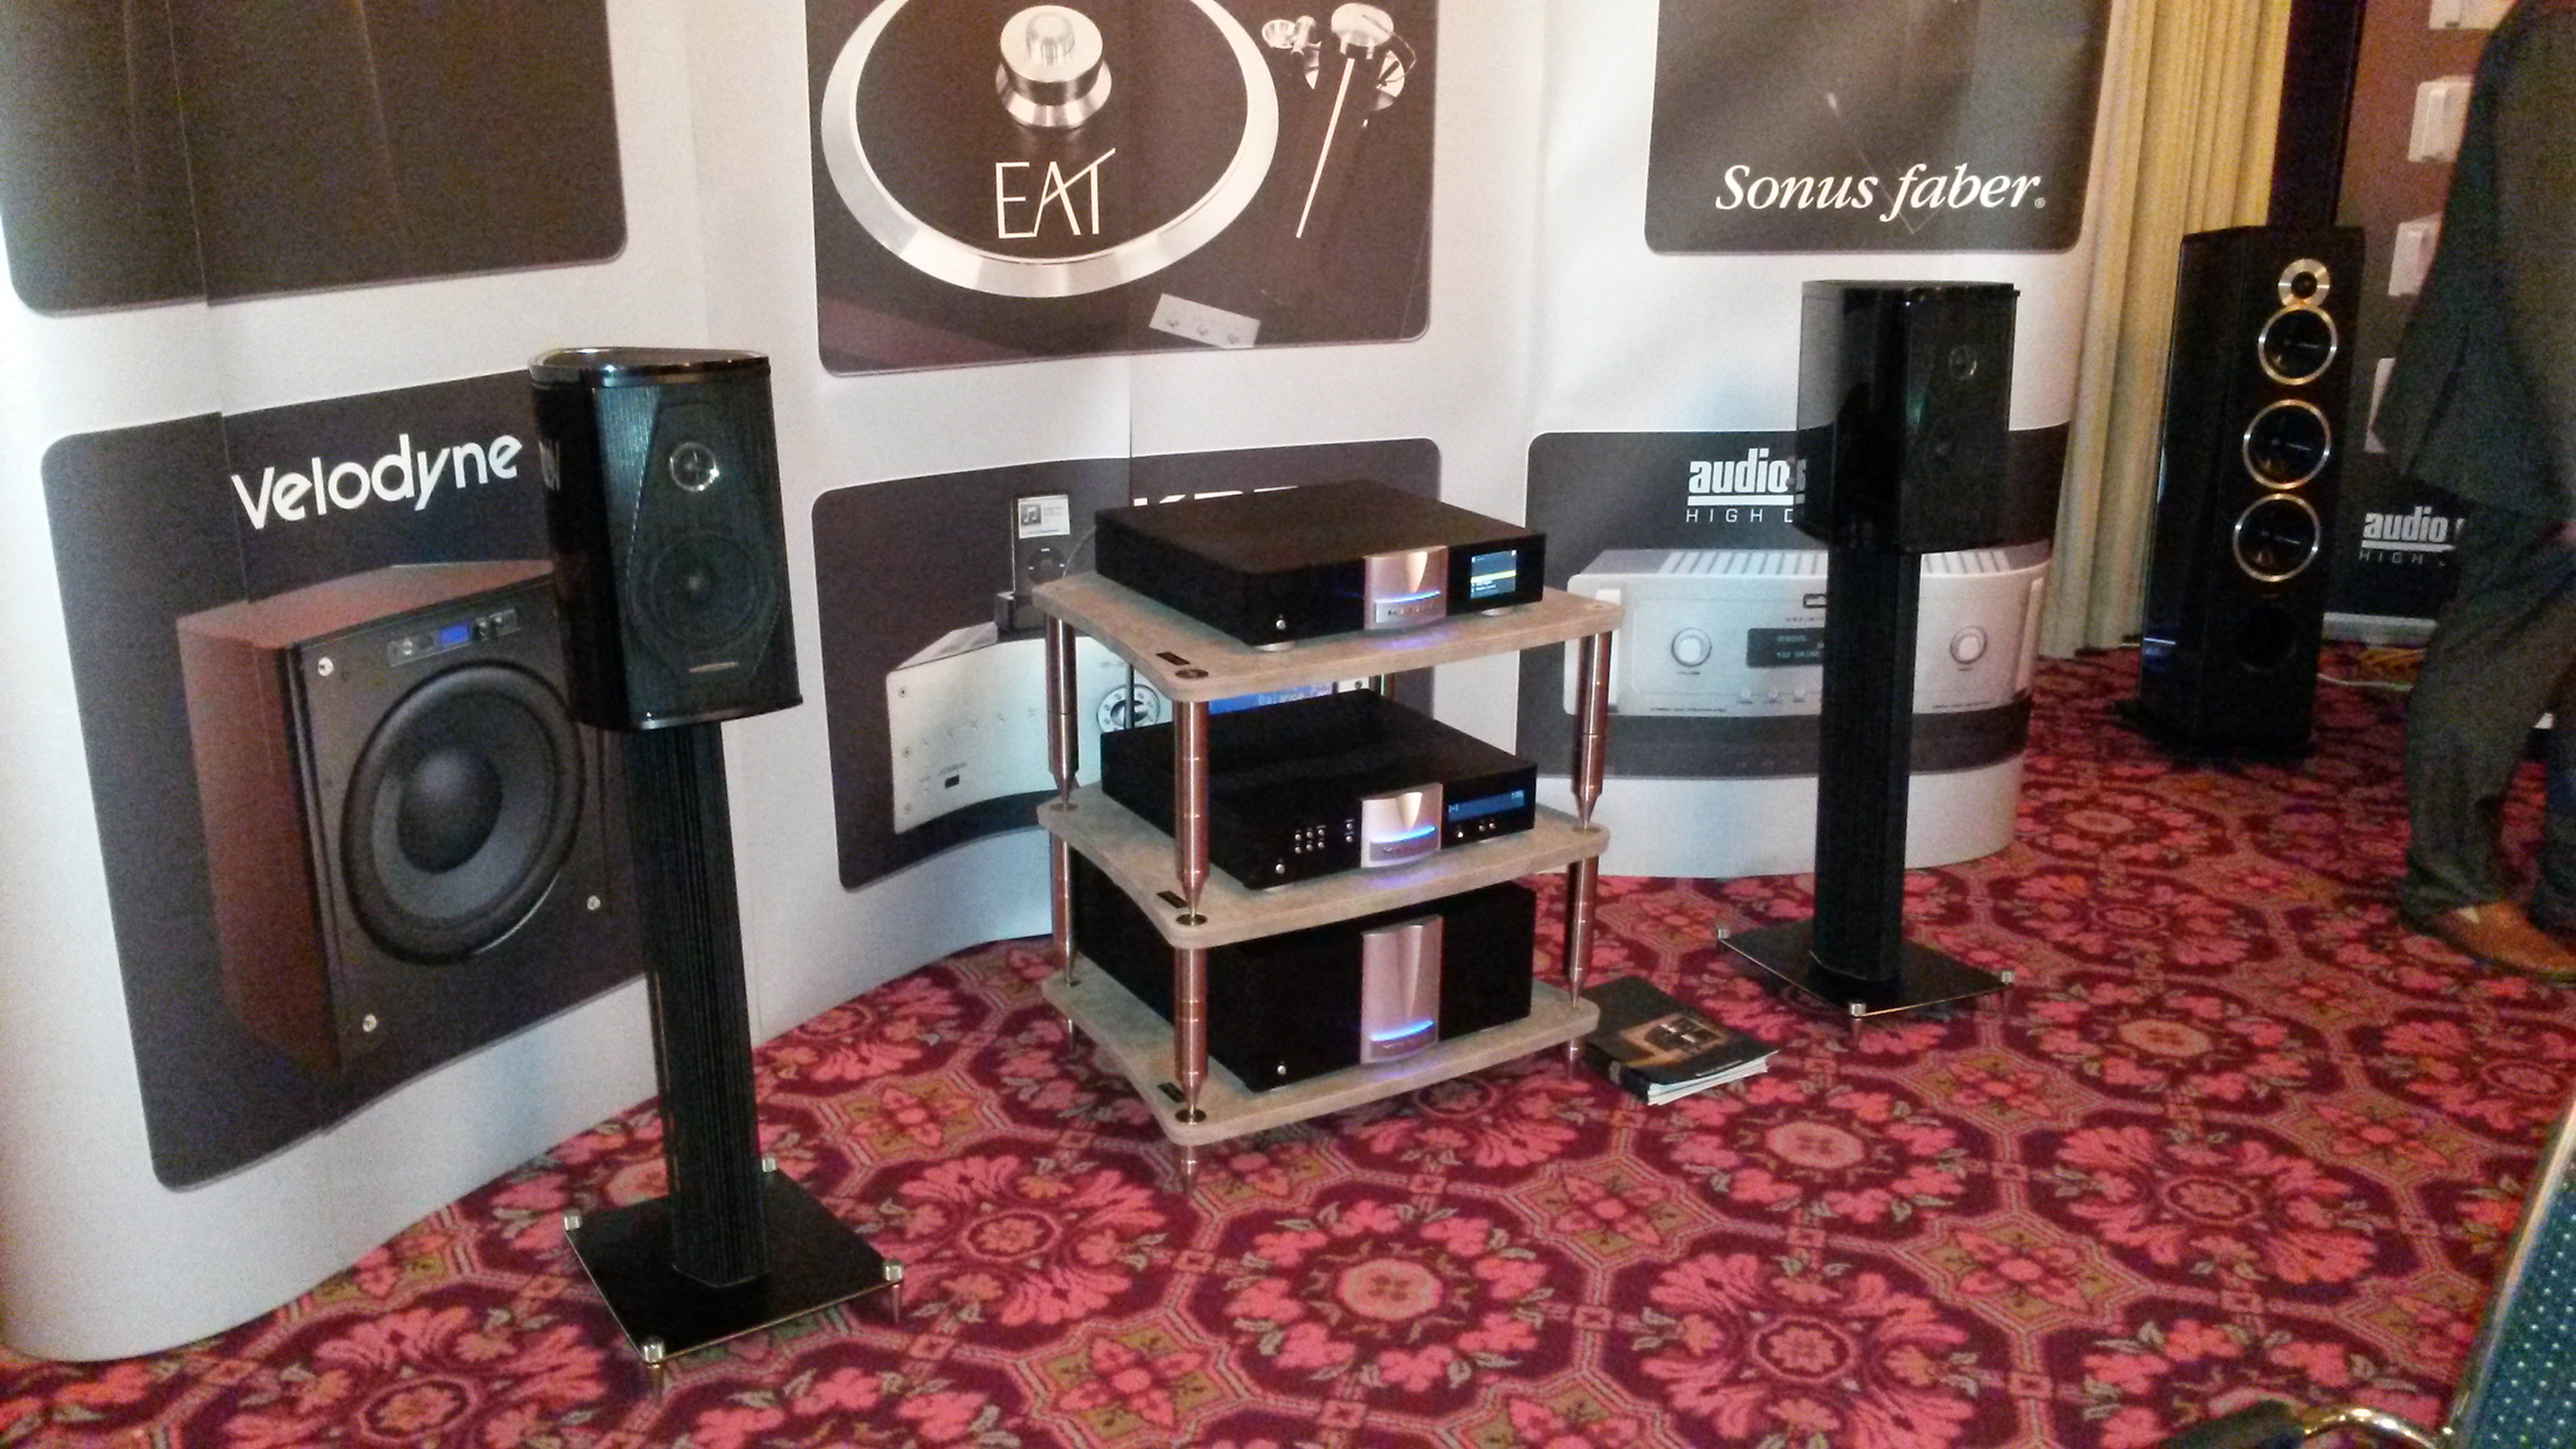 Westdeutsche HiFi-Tage 2015, audio-area, Audio Reference, Sonus faber Olympica I Piano Black, KRELL DUO 175, KRELL Illusion, KRELL Connect, Bassocontinuo, Sonus faber Chameleon T